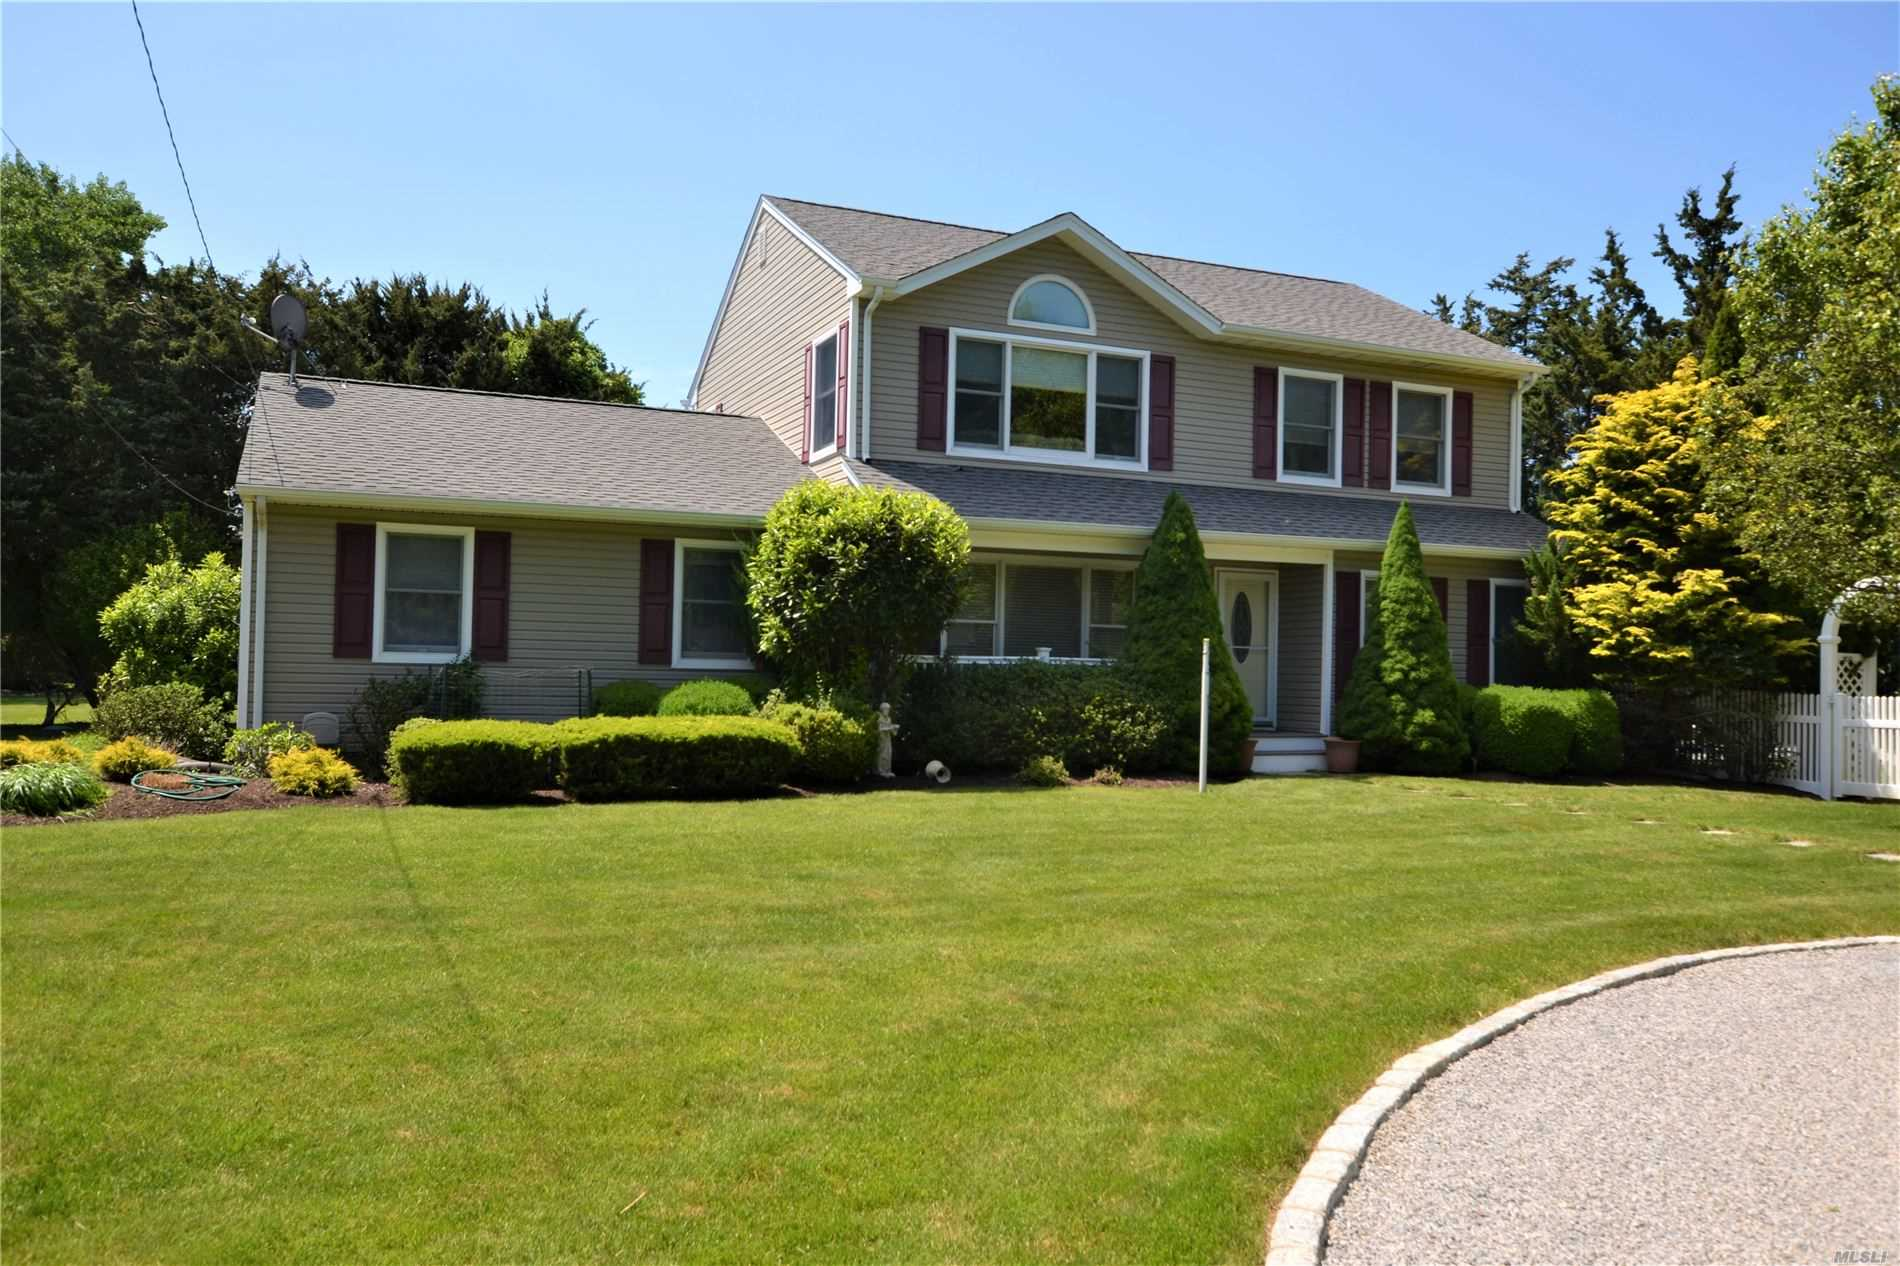 This Turn-Key, South-Of-The-Highway Post Modern, Offers 5 Bedrooms, 4 Full Baths, Eik, Formal Dining Room, Living Room, Mud Room And Finished Basement. The Private Grounds Offer An In-Ground Pool And Mature Landscaping. Set On Desirable Tanners Neck Lane, A Short Distance To Main Street And Village Beaches. This Home Is A Great Value For Under 1 Million. Exclusive $939, 000.